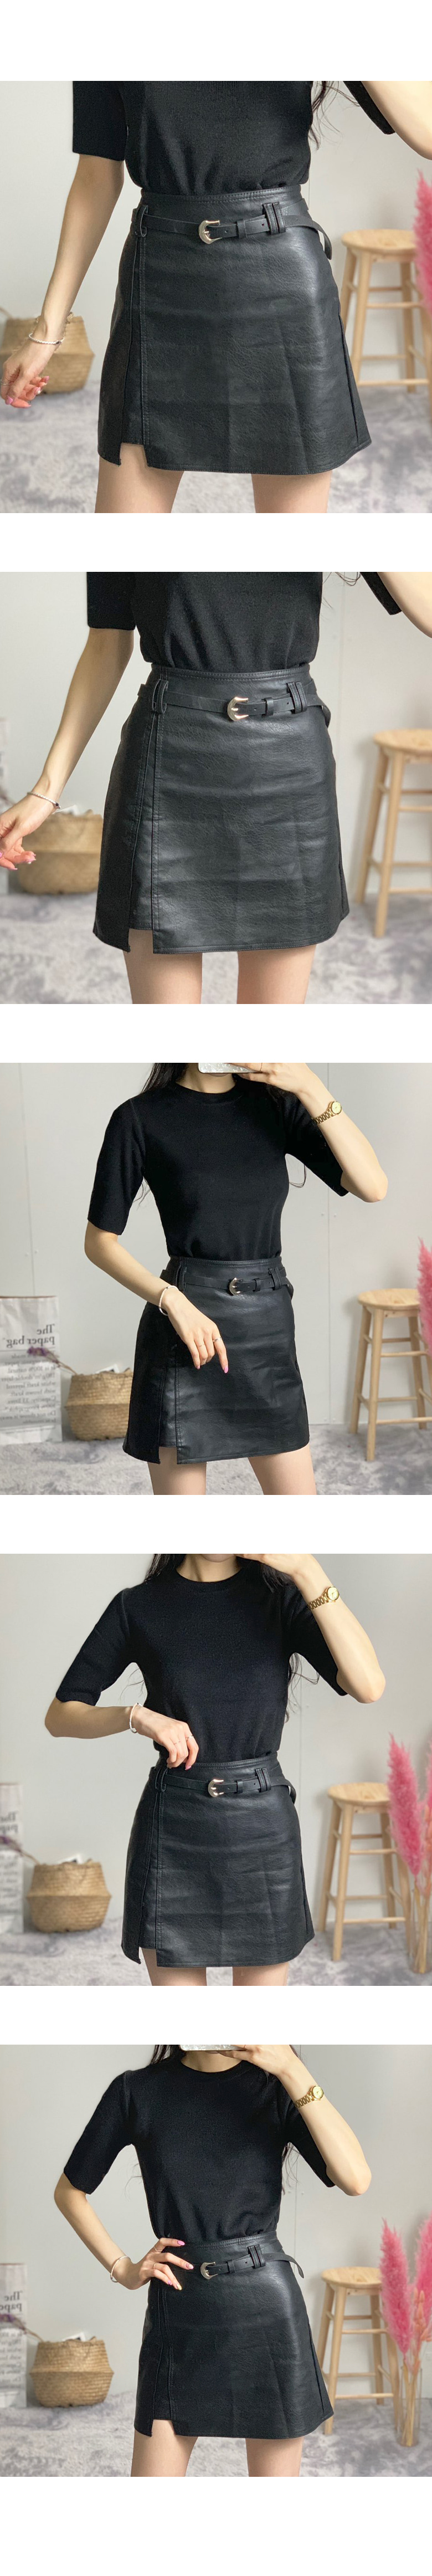 Retro Belt Leather Skirt